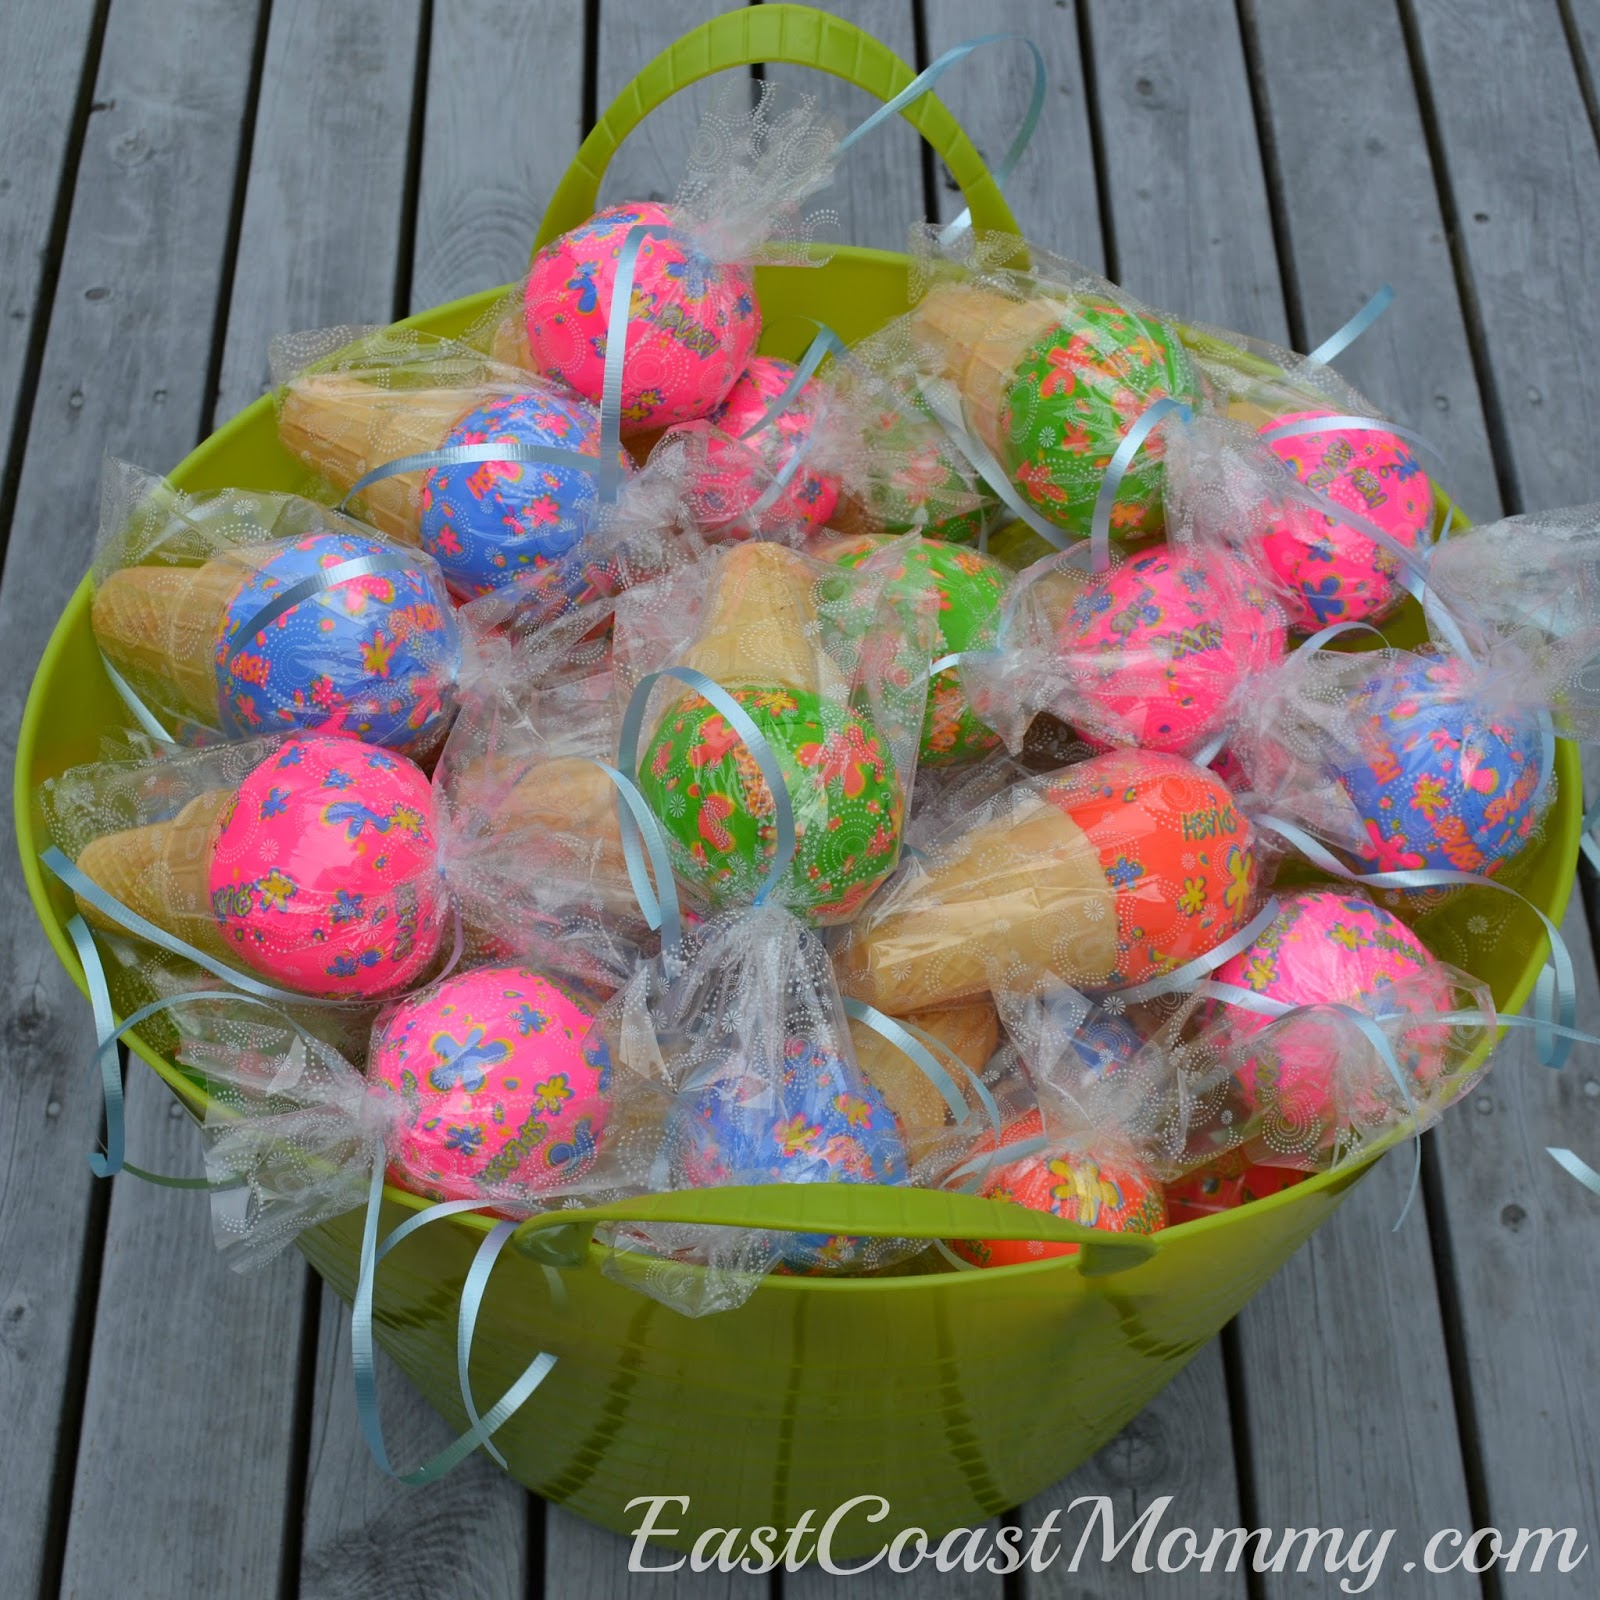 East coast mommy 40 unique loot bag ideas 34 special treats for a pool party click link for additional info negle Gallery